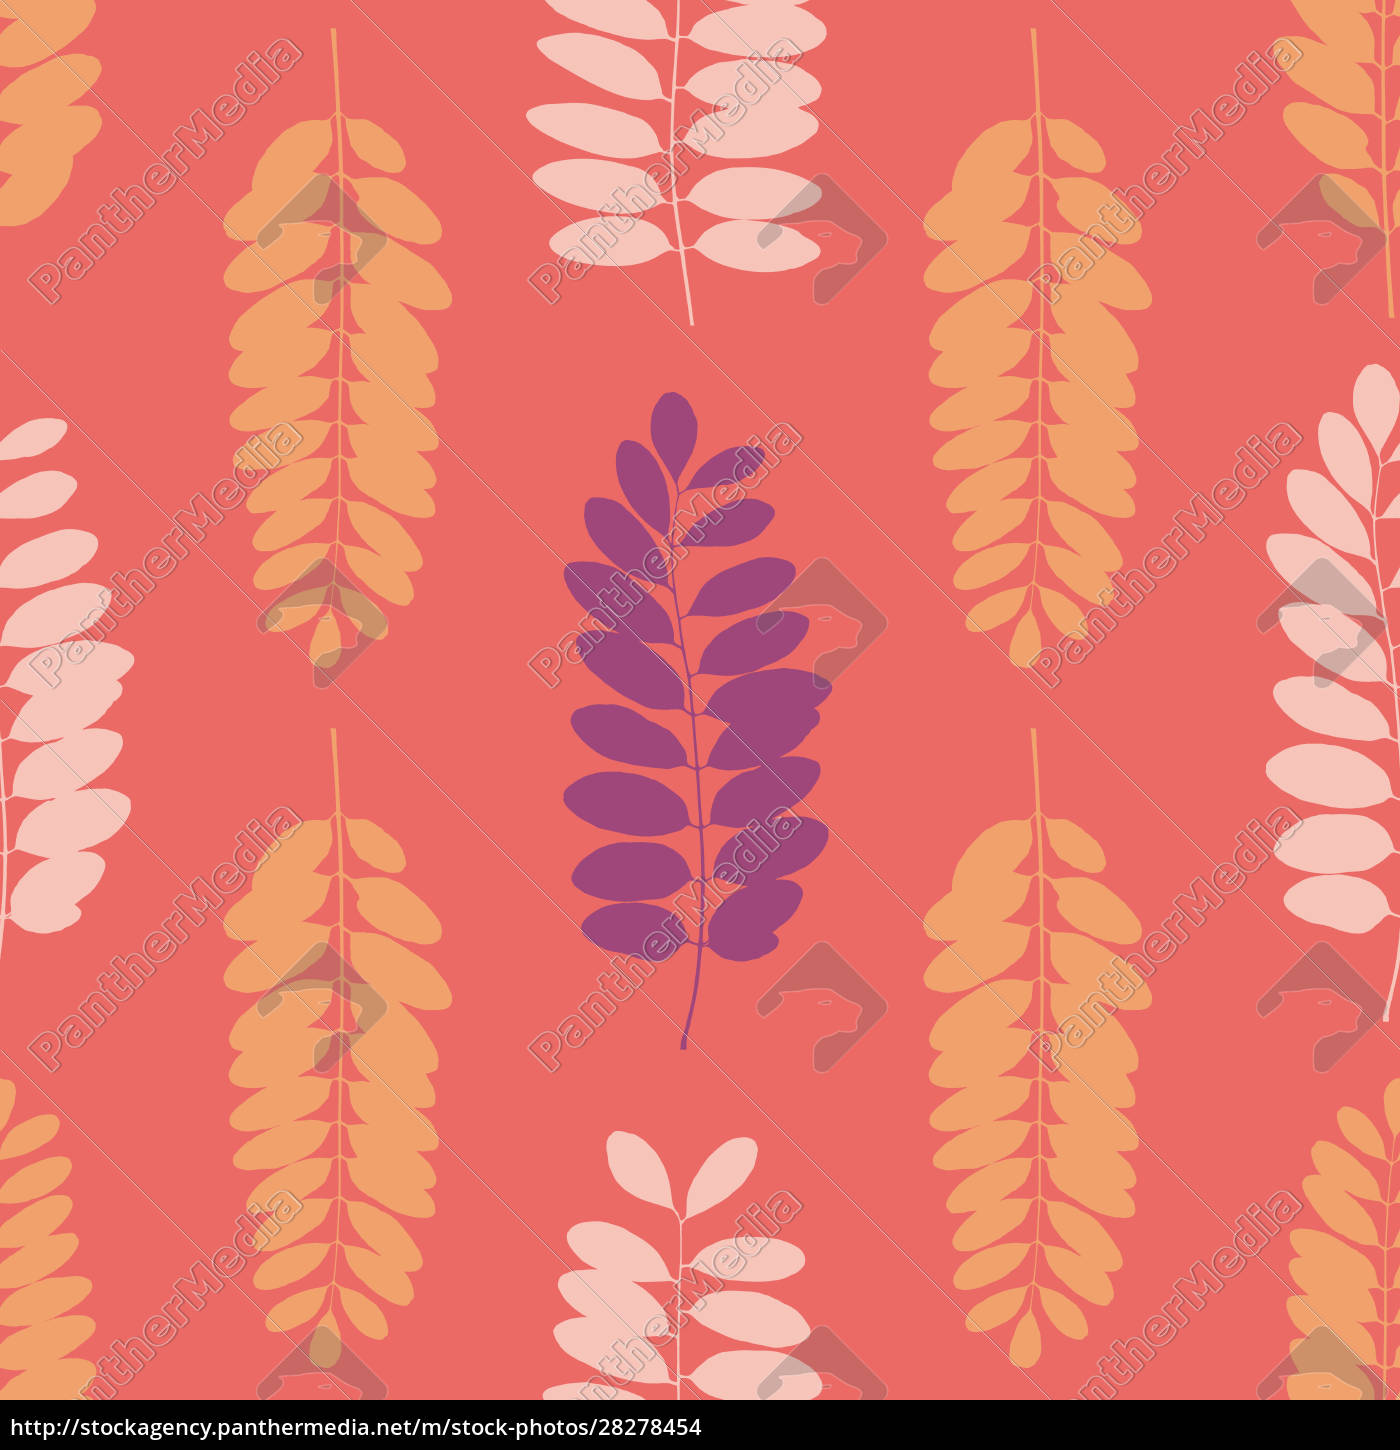 tree, leaf, silhouettes, seamless, pattern., vector - 28278454